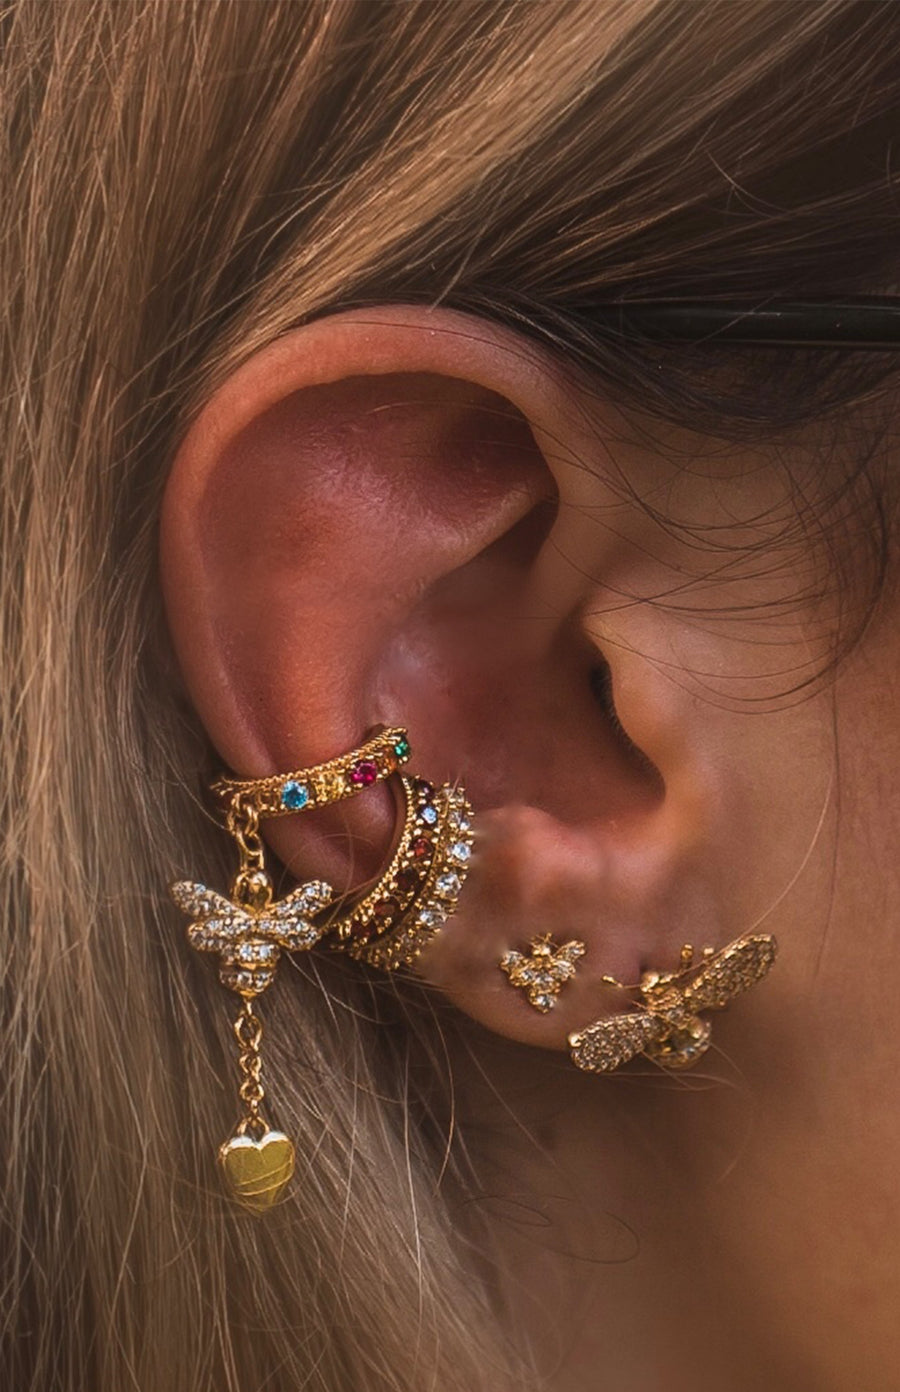 Victoria Bee Rainbow Ear Cuff